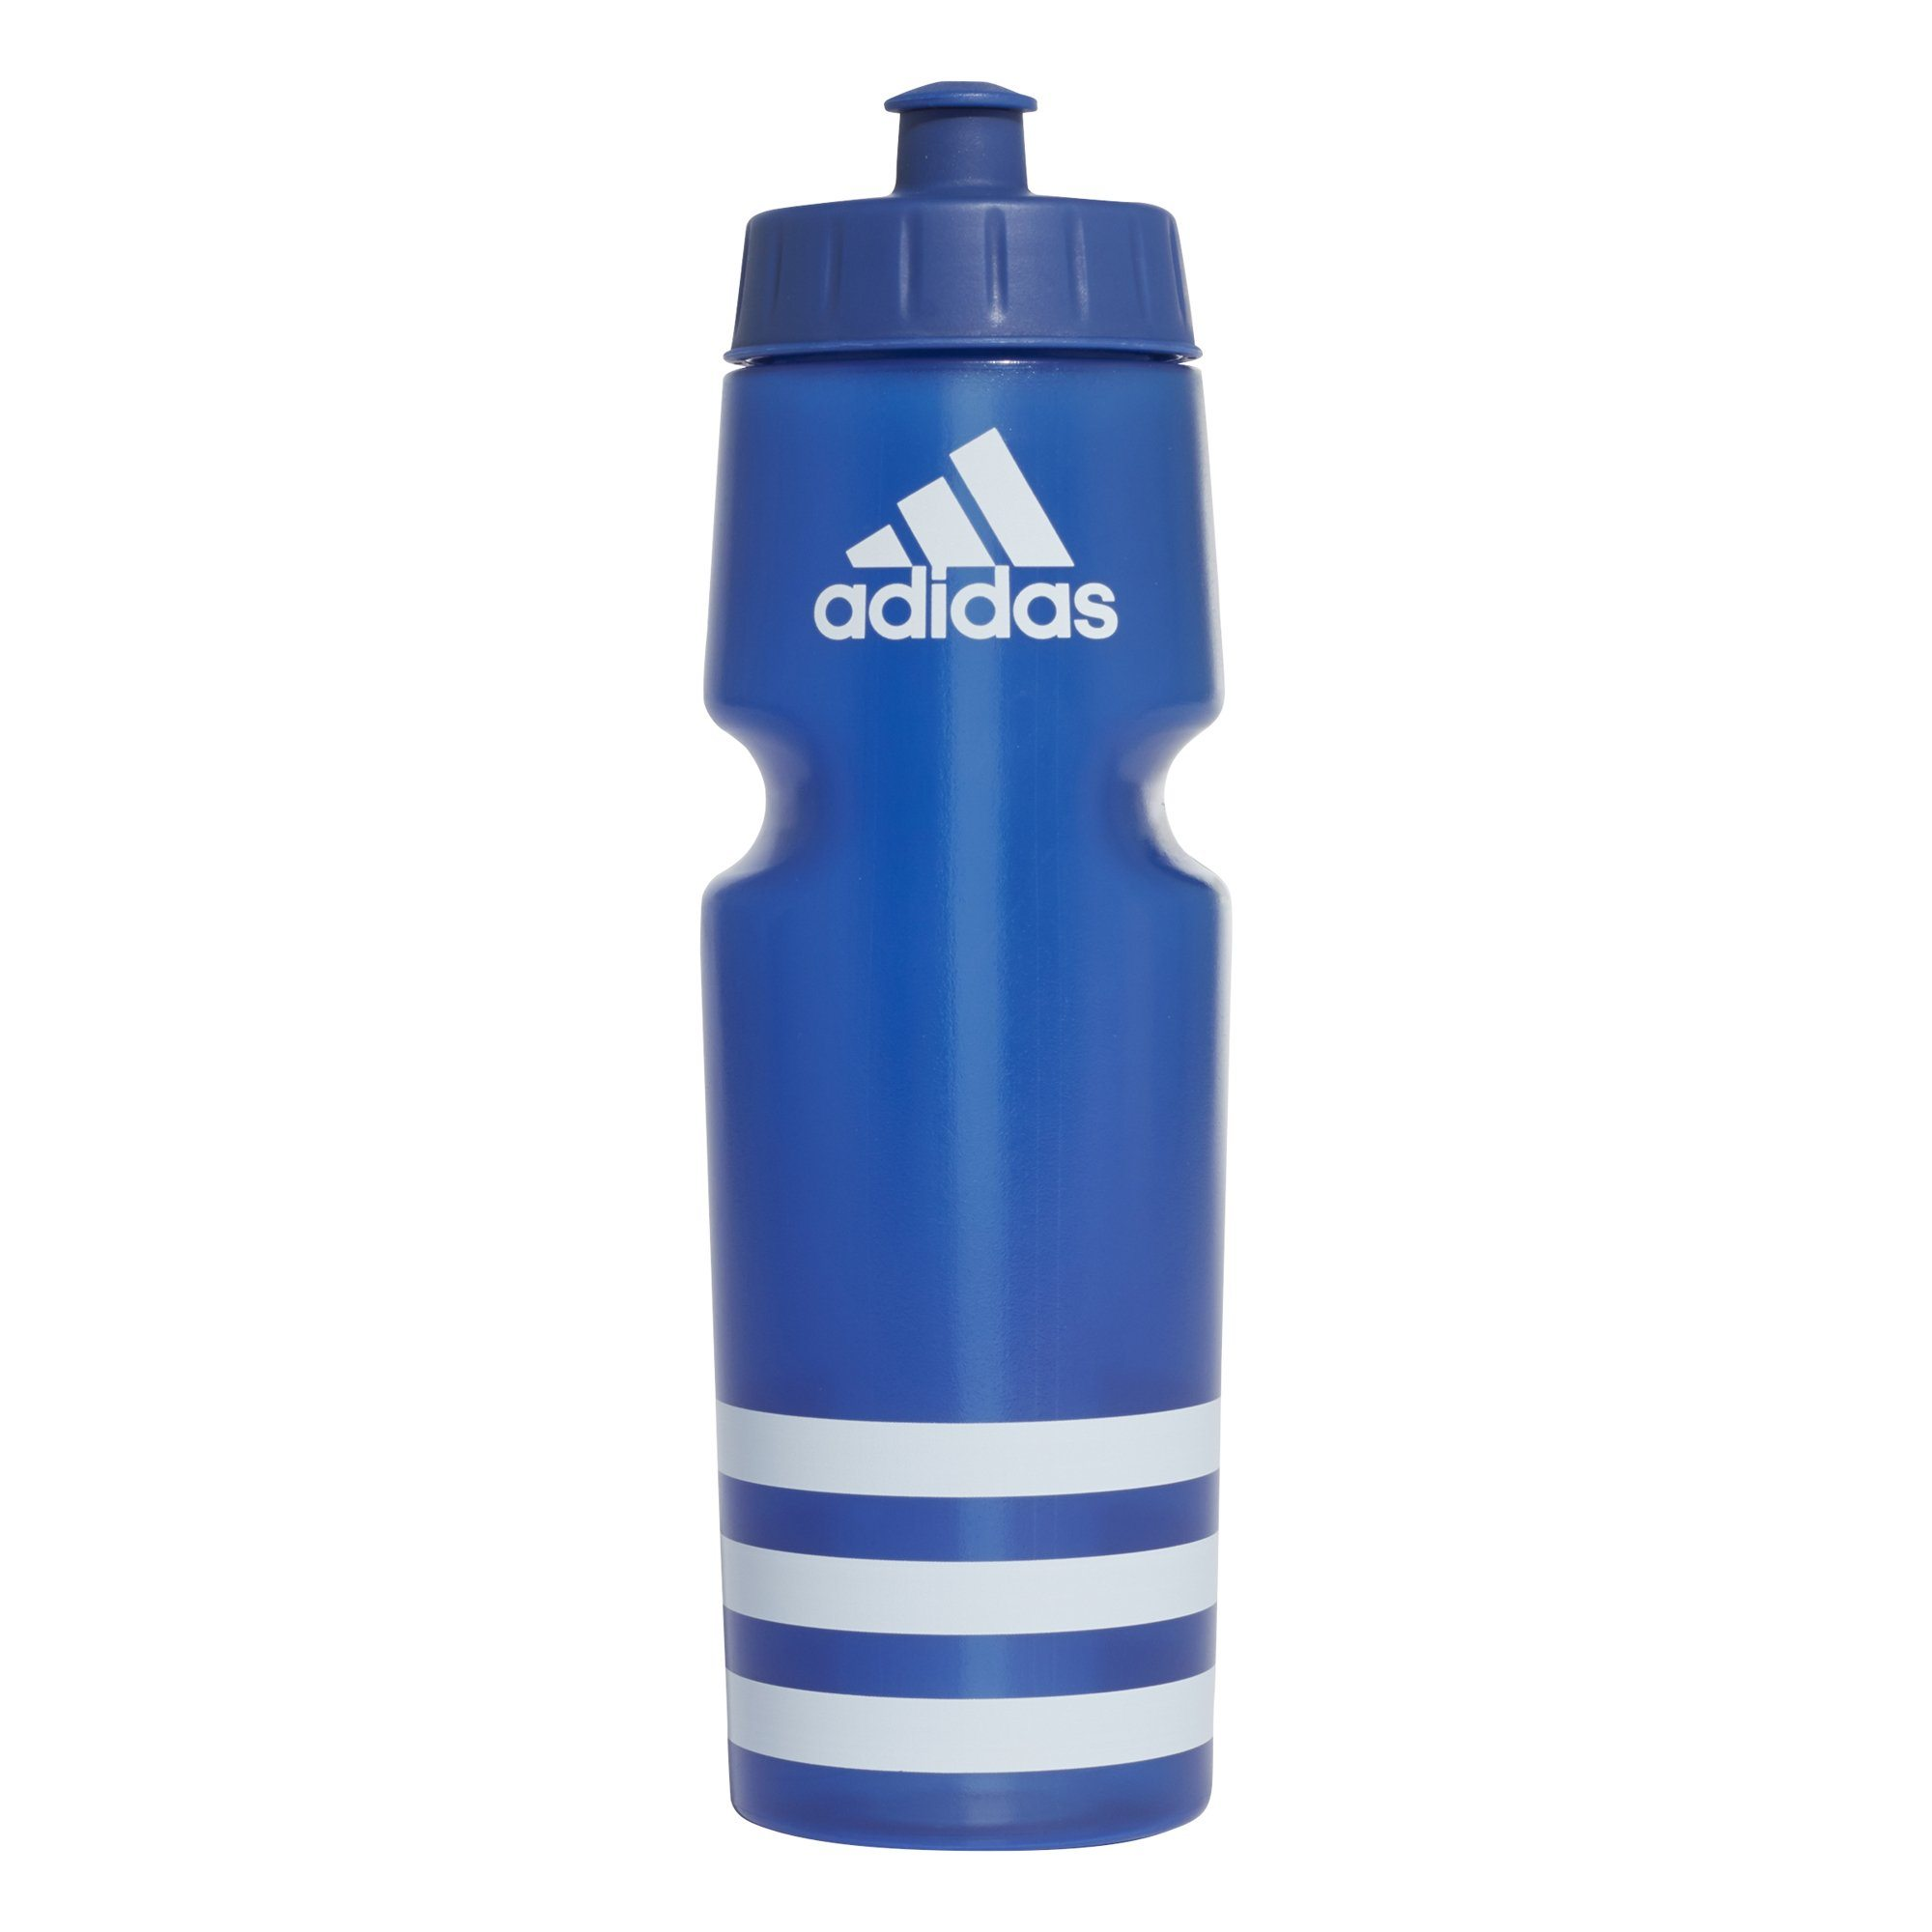 Adidas Performance 750ml Water Bottle - Bold Blue/White Accessories Adidas